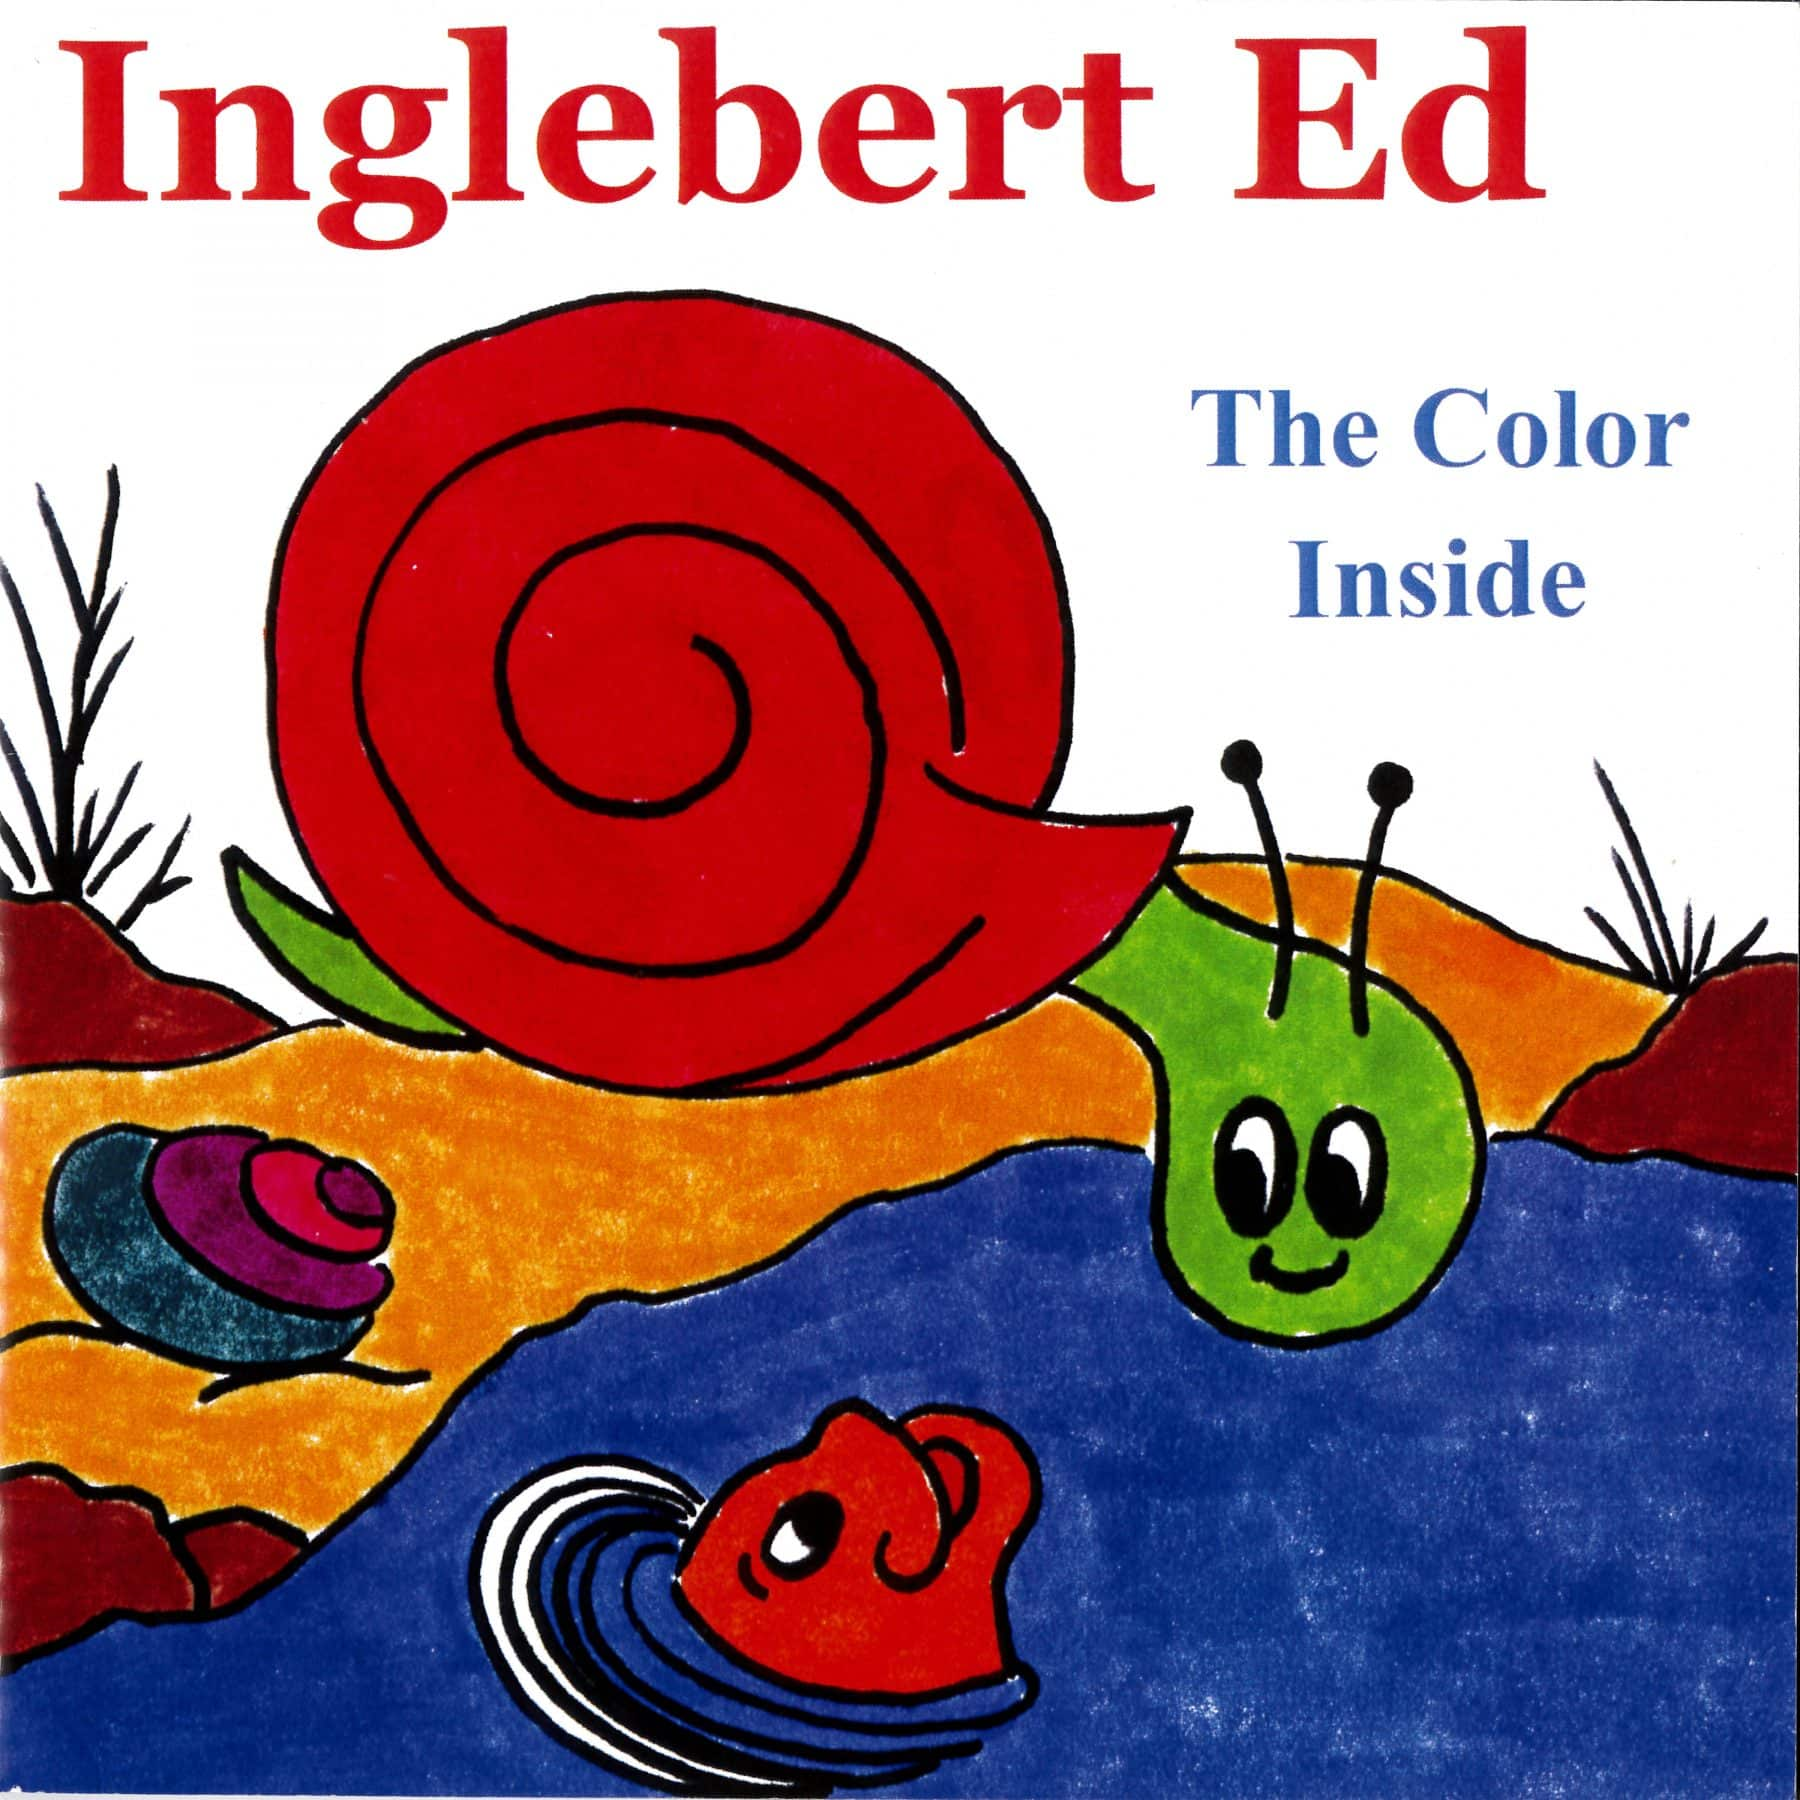 Inglebert Ed - The Color Inside (Storybook Only)